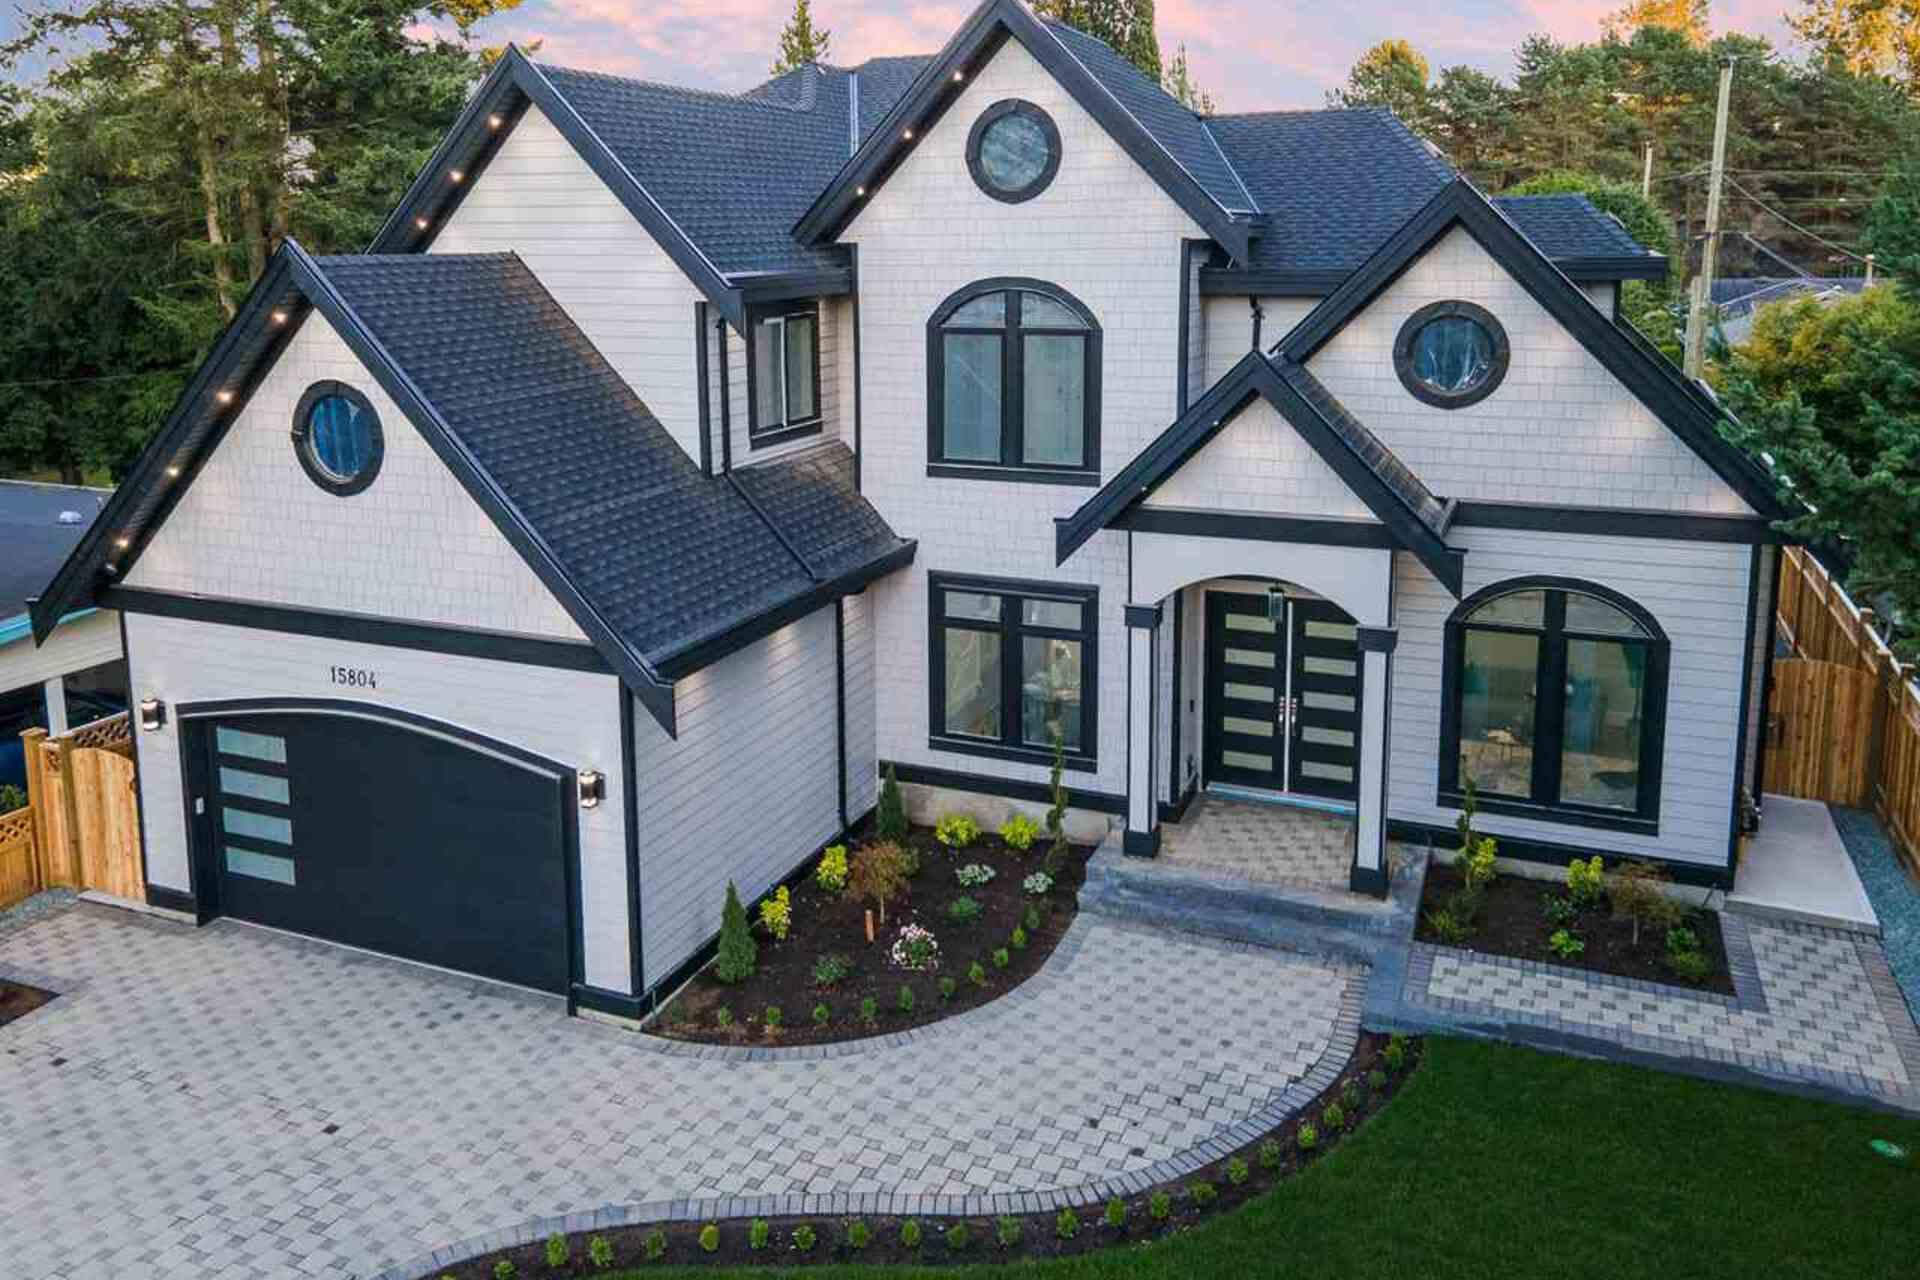 15804 Tulip Drive, King George Corridor, South Surrey White Rock